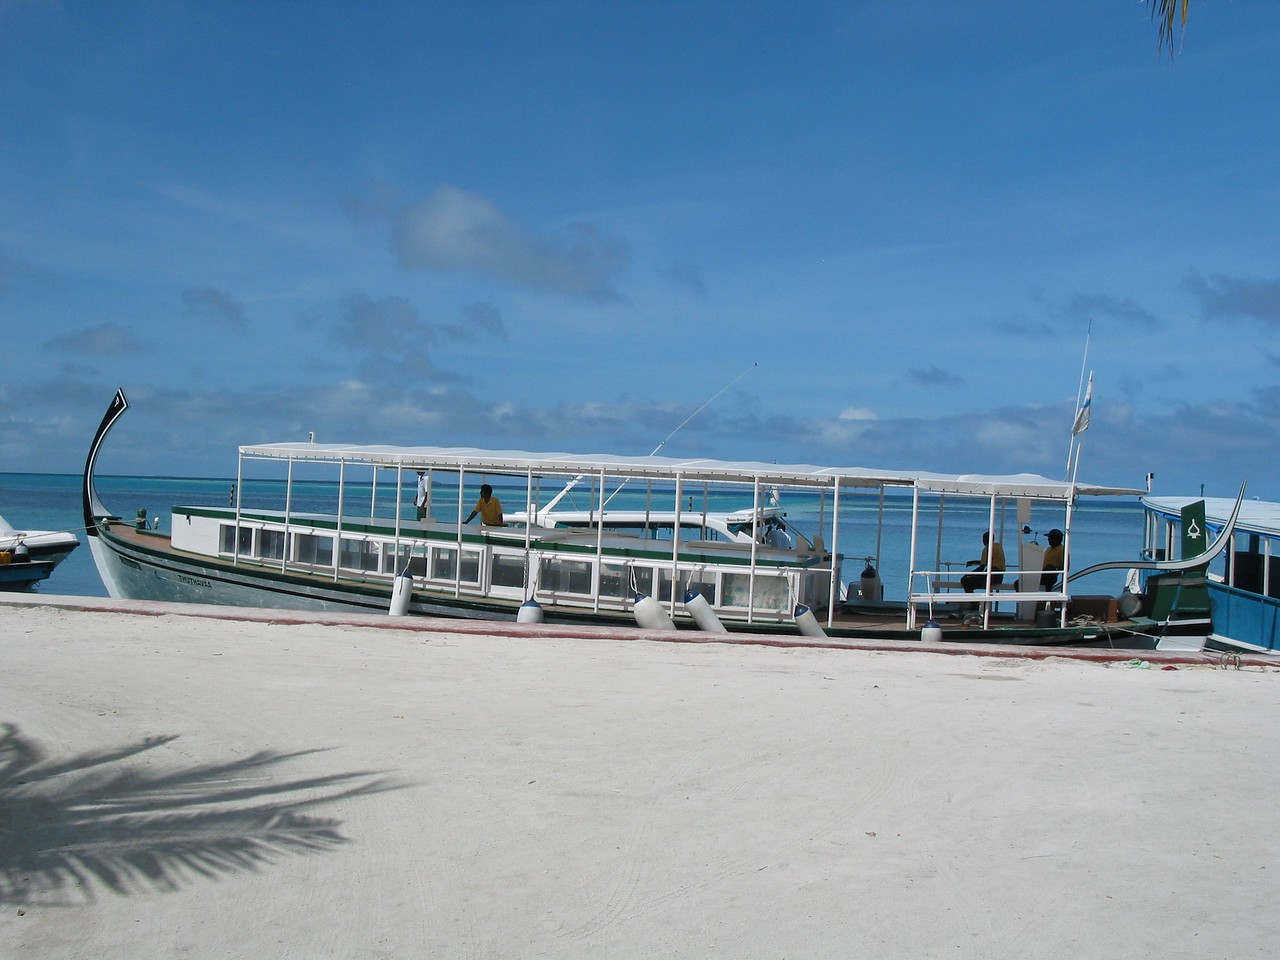 Most resorts offer direct pickup at the Maldives Airport.  Most tourists never venture into Male.  Traditional boats can take you for a day trip into Male.  Overnight stays in Male are tightly controlled by the government.